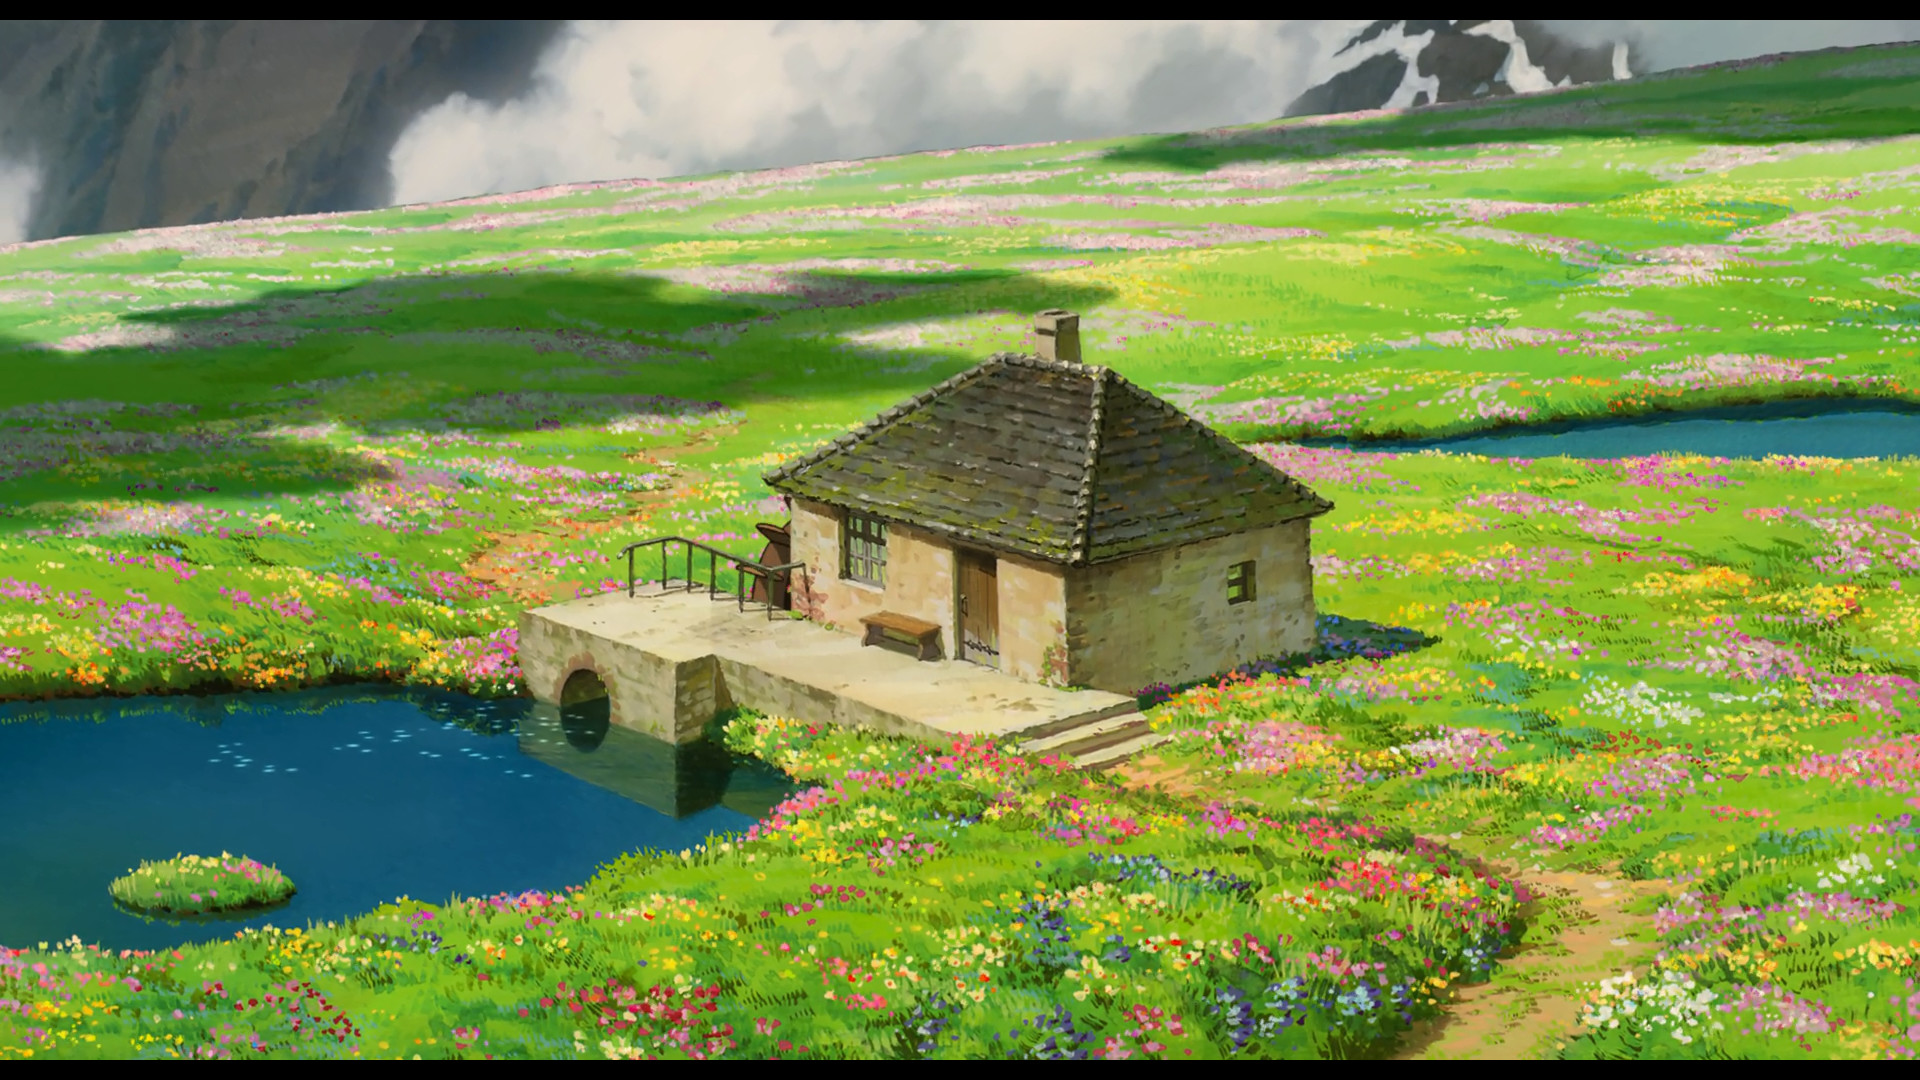 Anime anime Studio Ghibli landscape house water field cottage  flowers peaceful Howl's Moving Castle